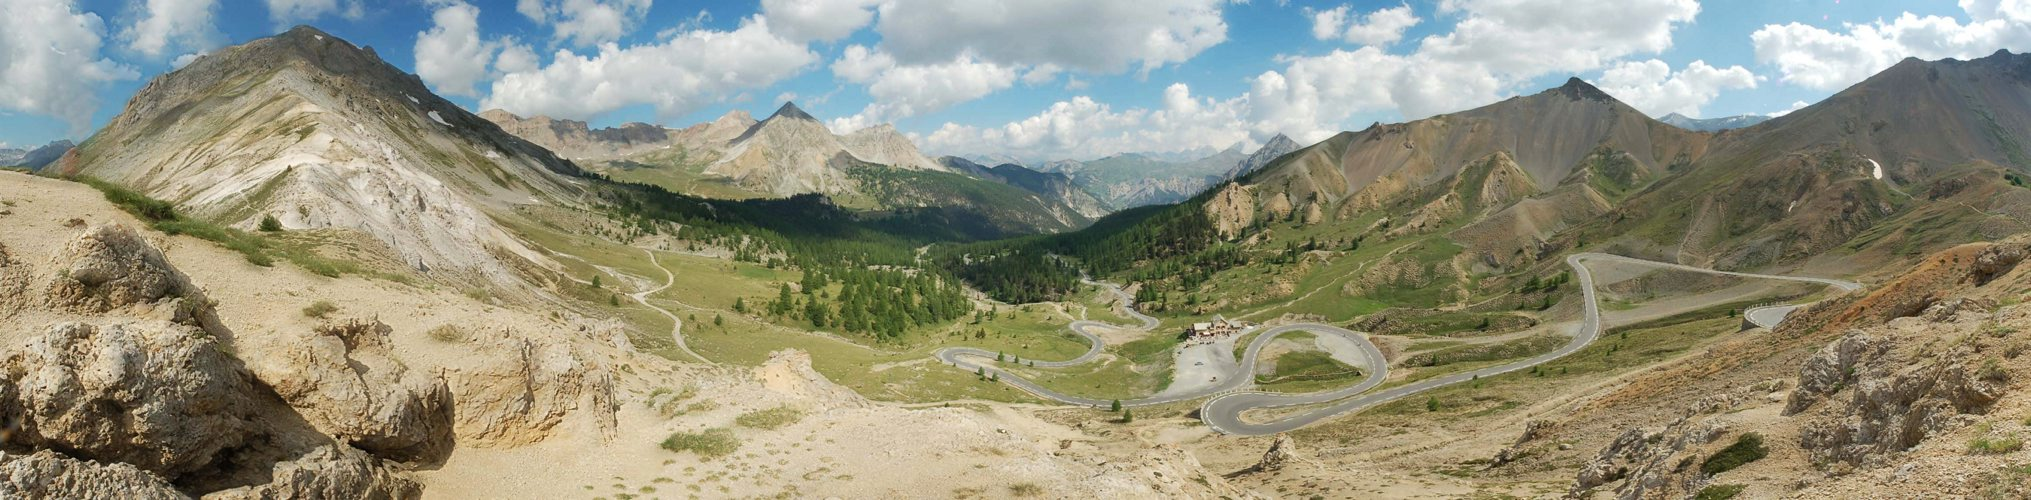 France, Briancon, Col d''Izoard